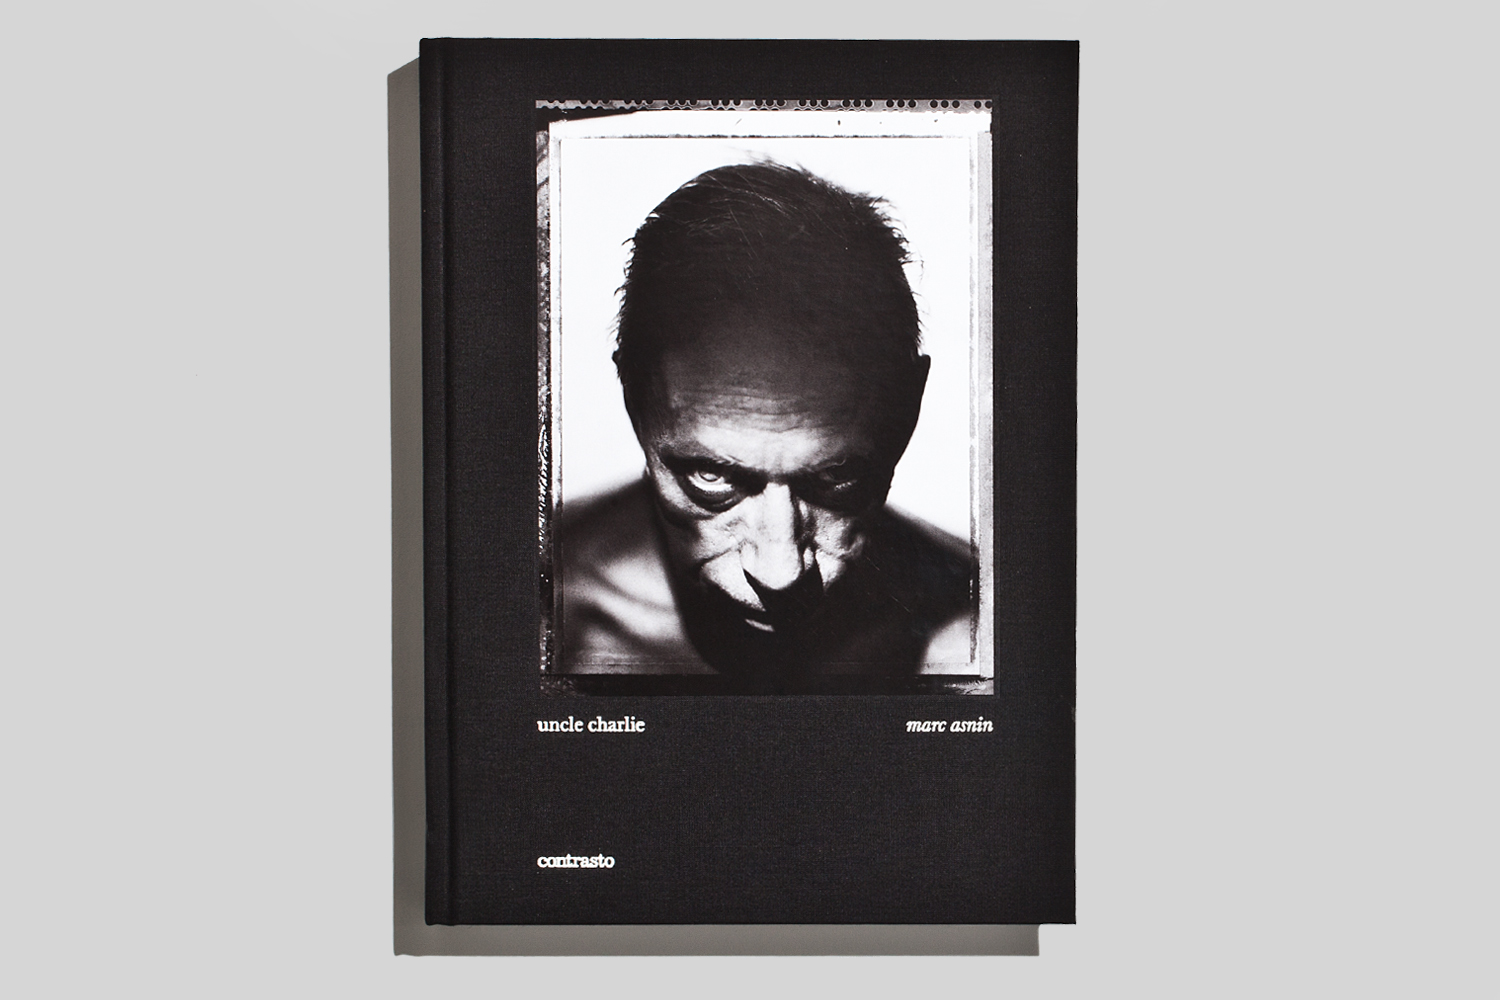 Uncle Charlie by Marc Asnin, selected by Elisabeth Biondi, photo editor, curator and former visuals editor of The New Yorker